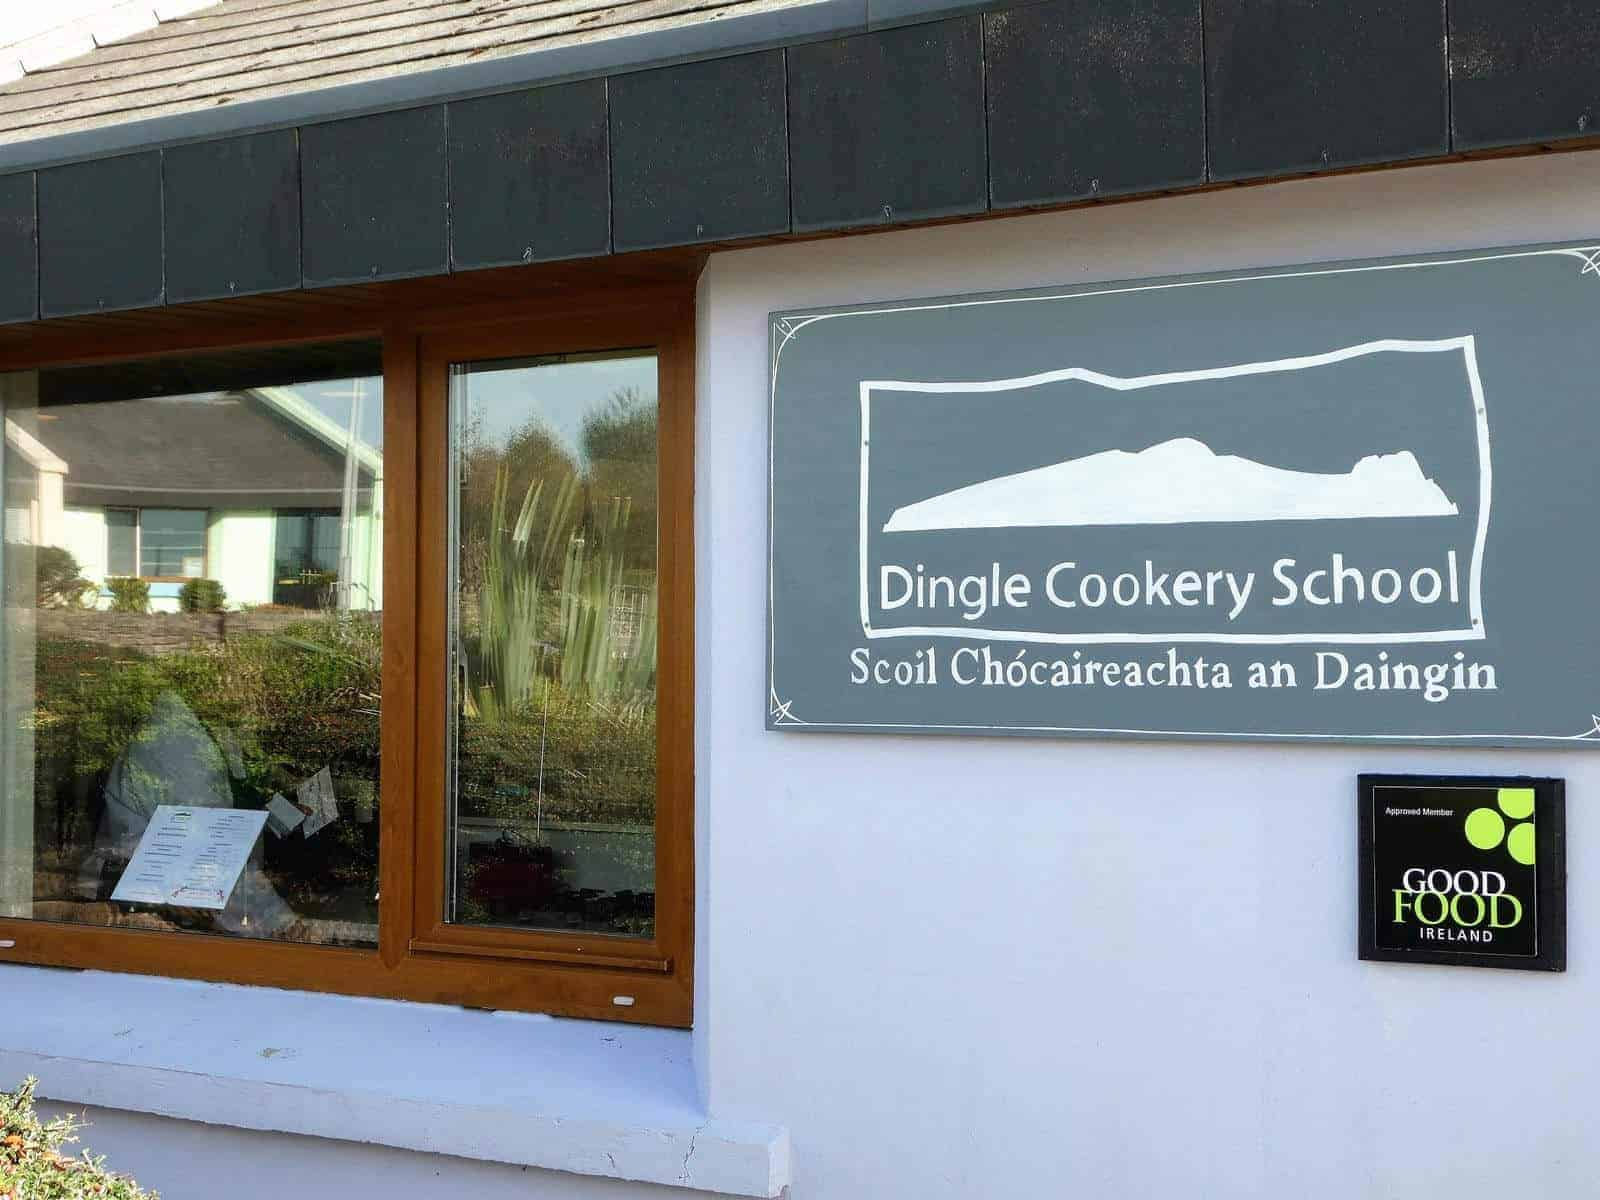 Dingle Cooker School